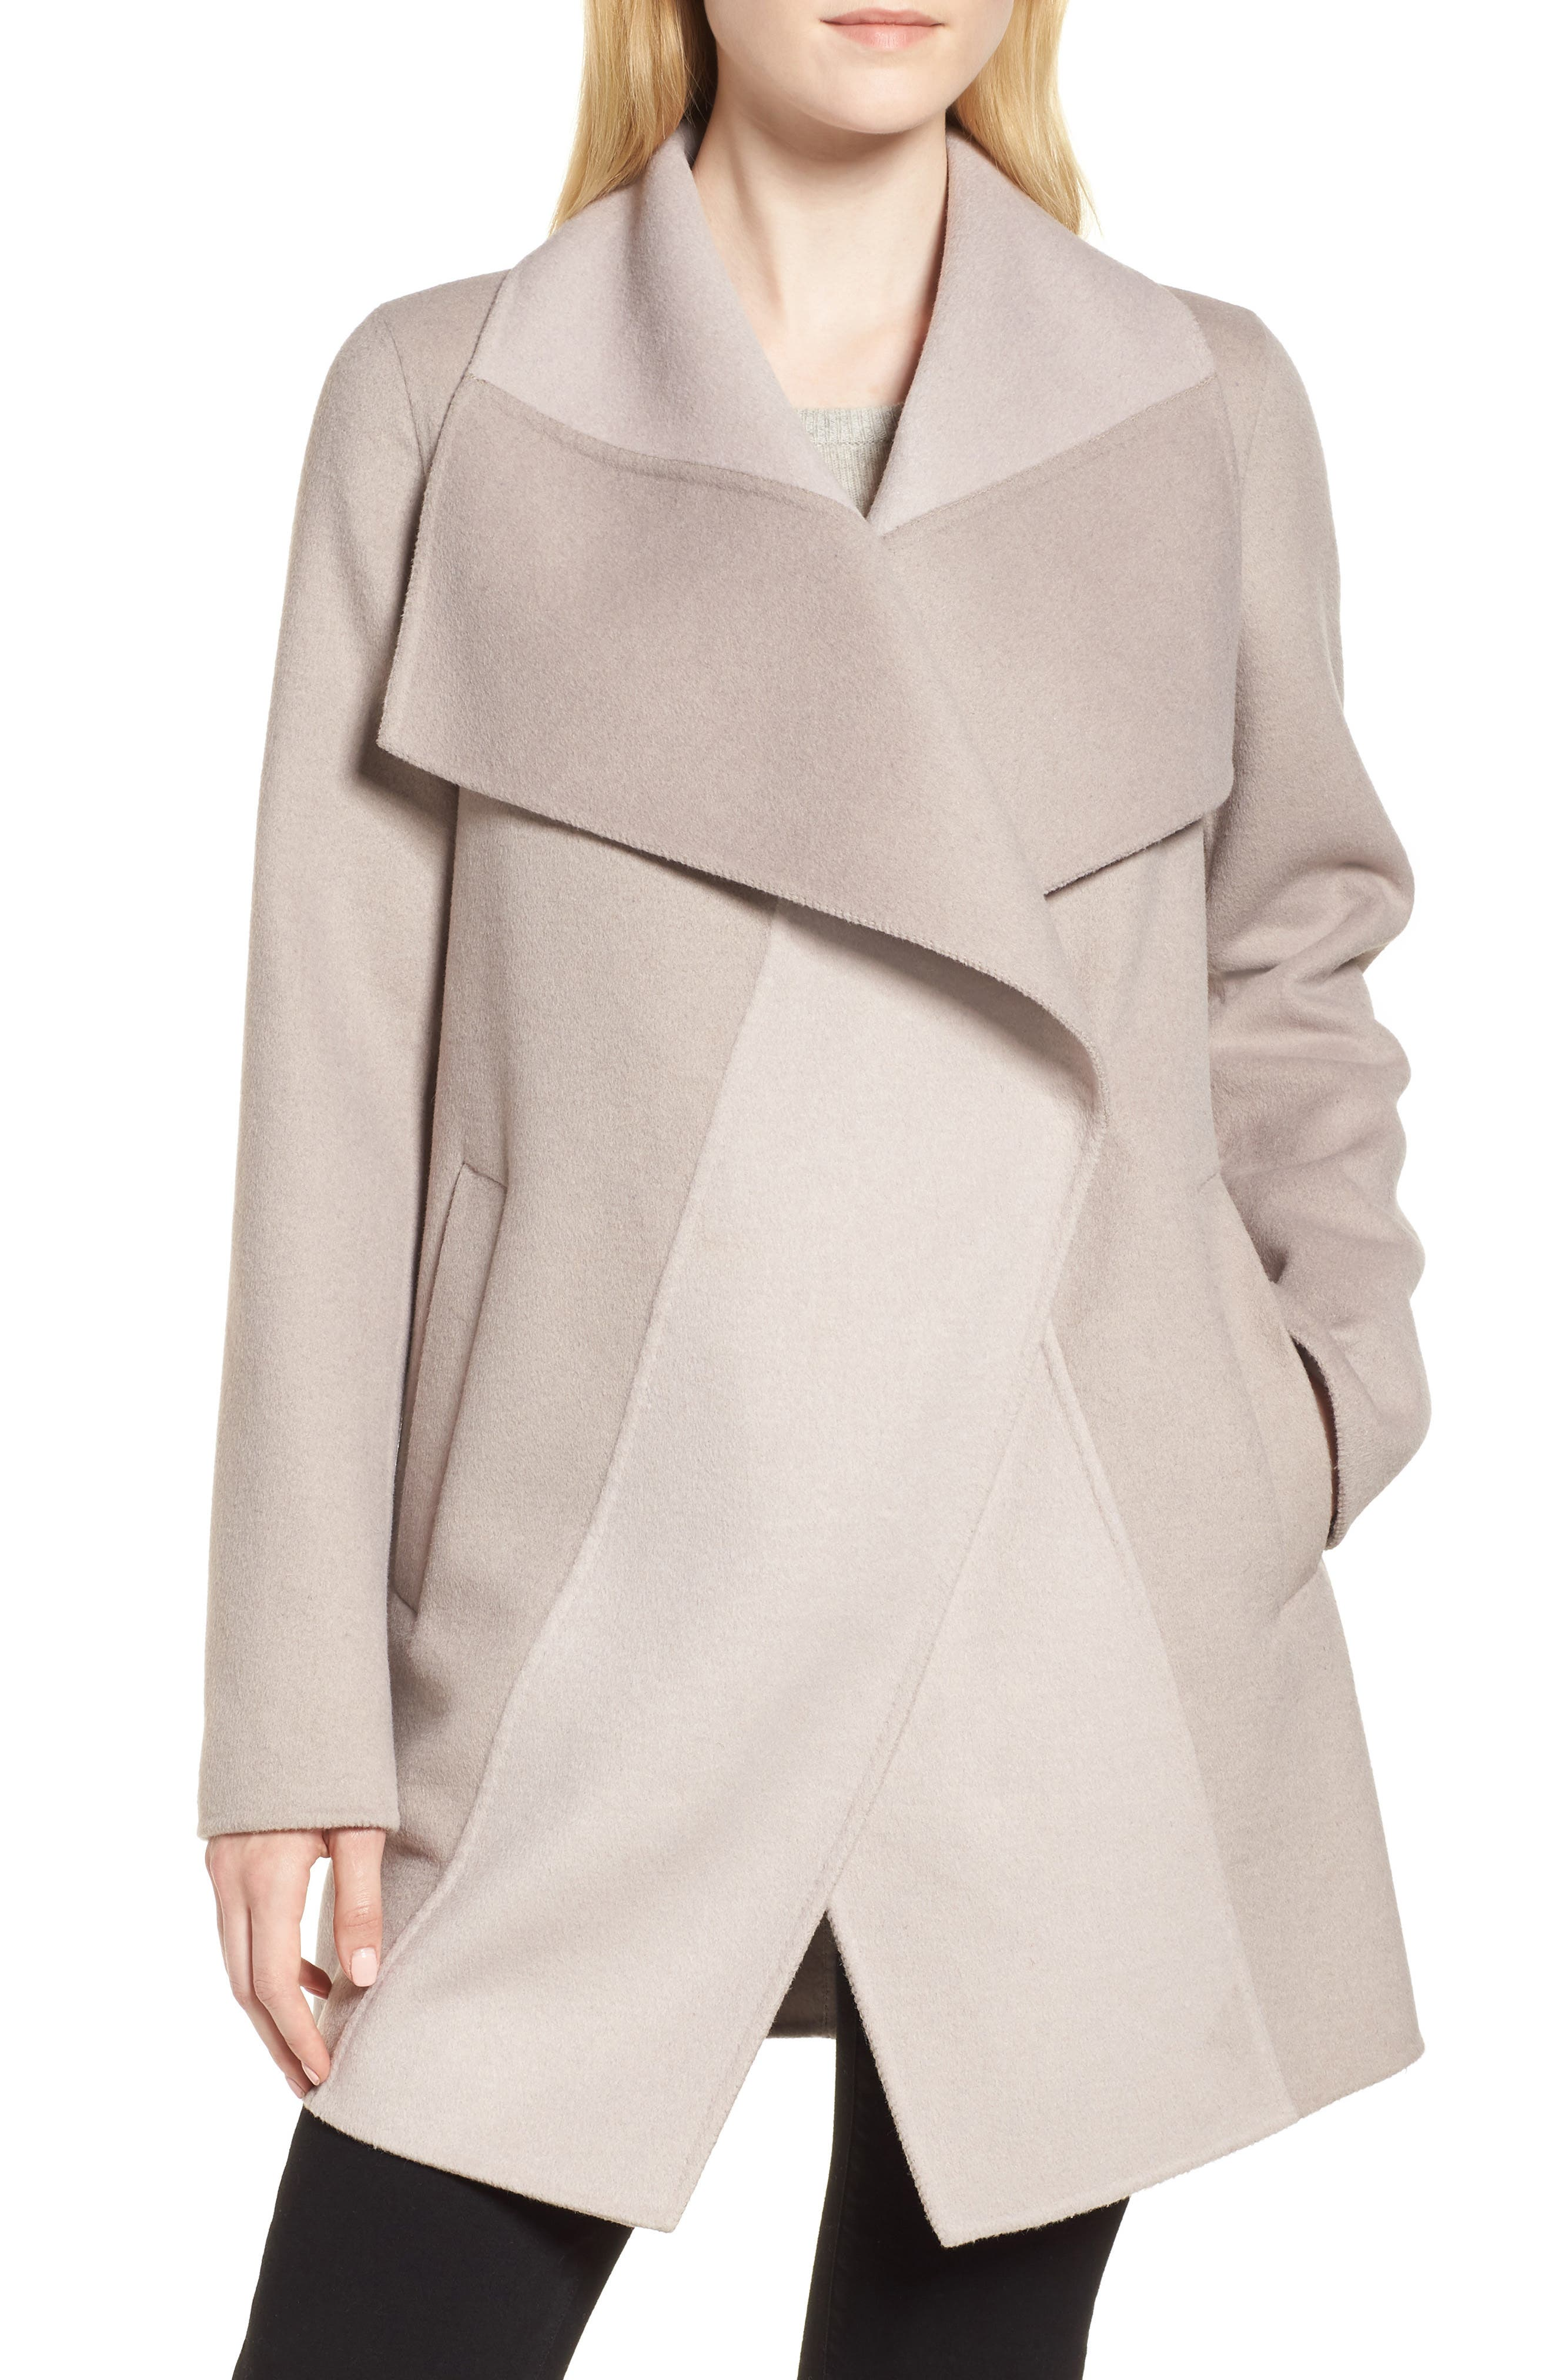 Nicky Double Face Wool Blend Oversize Coat,                         Main,                         color, OYSTER BAY/ BROWN SUGAR